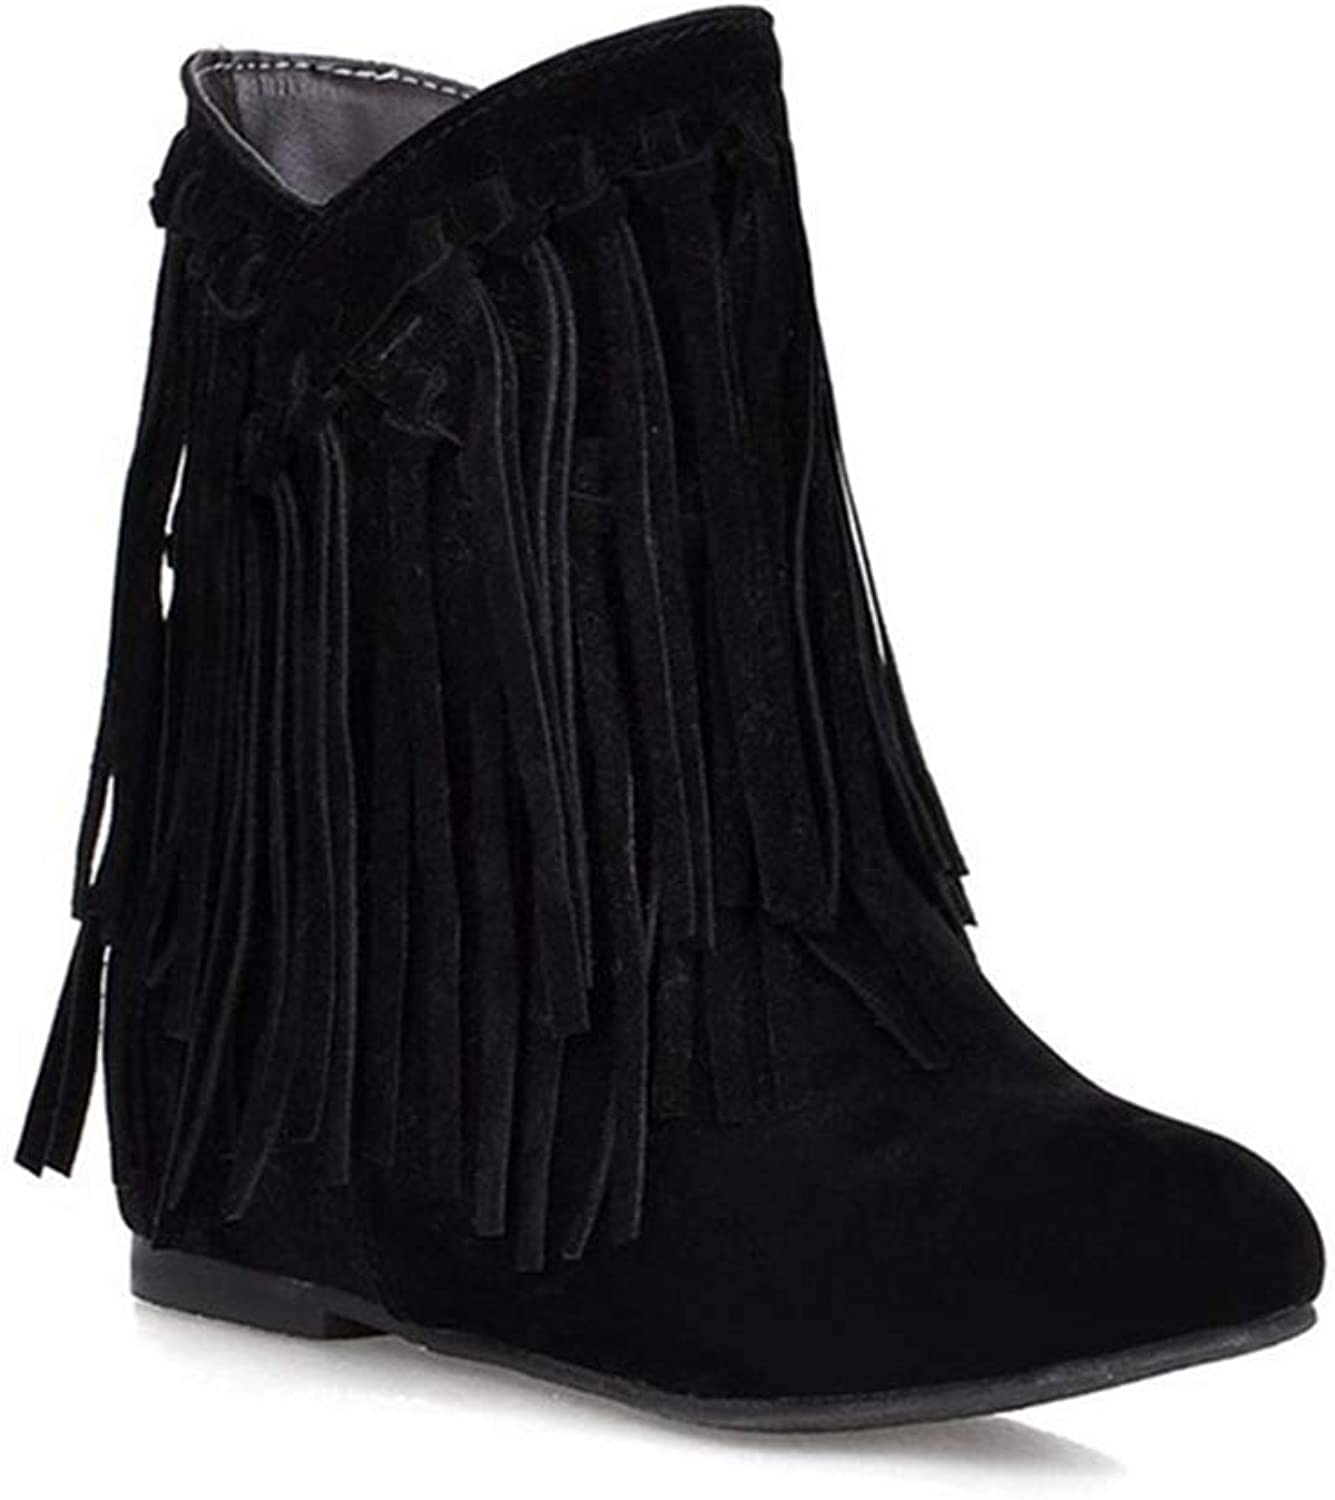 GIY Women's Winter Suede Fringed Ankle Boots Fashion Low Wedge Heel Booties Tassels Dressy Short Boots